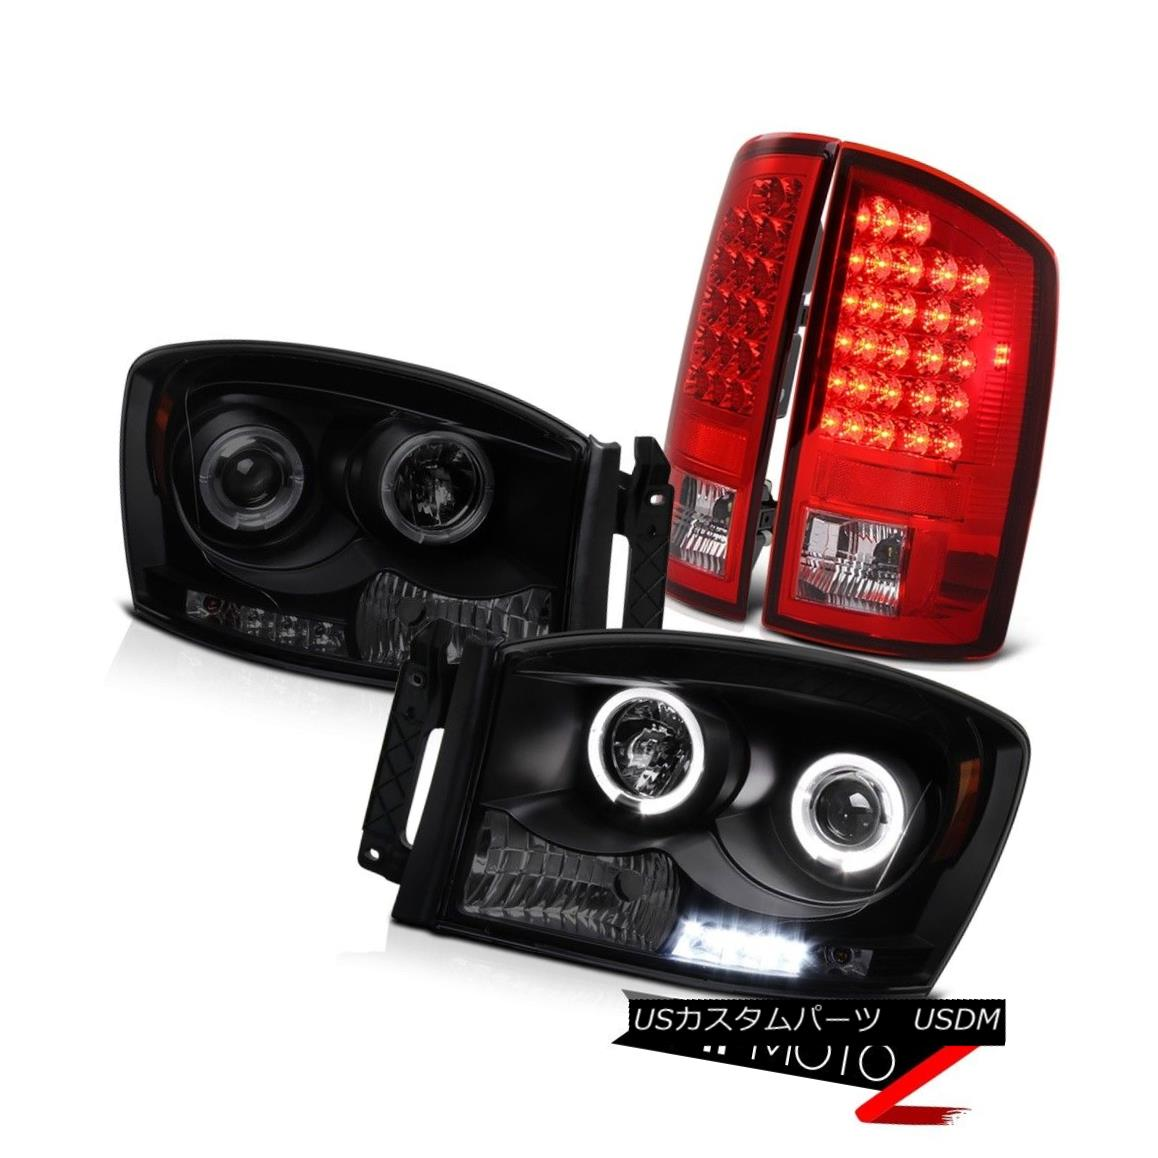 テールライト 2006 Dodge Ram 4x4 2X Angel Eye Projector Headlight BRIGHTEST Red LED Tail Light 2006 Dodge Ram 4x4 2XエンジェルアイプロジェクターヘッドライトBRIGHTESTレッドLEDテールライト